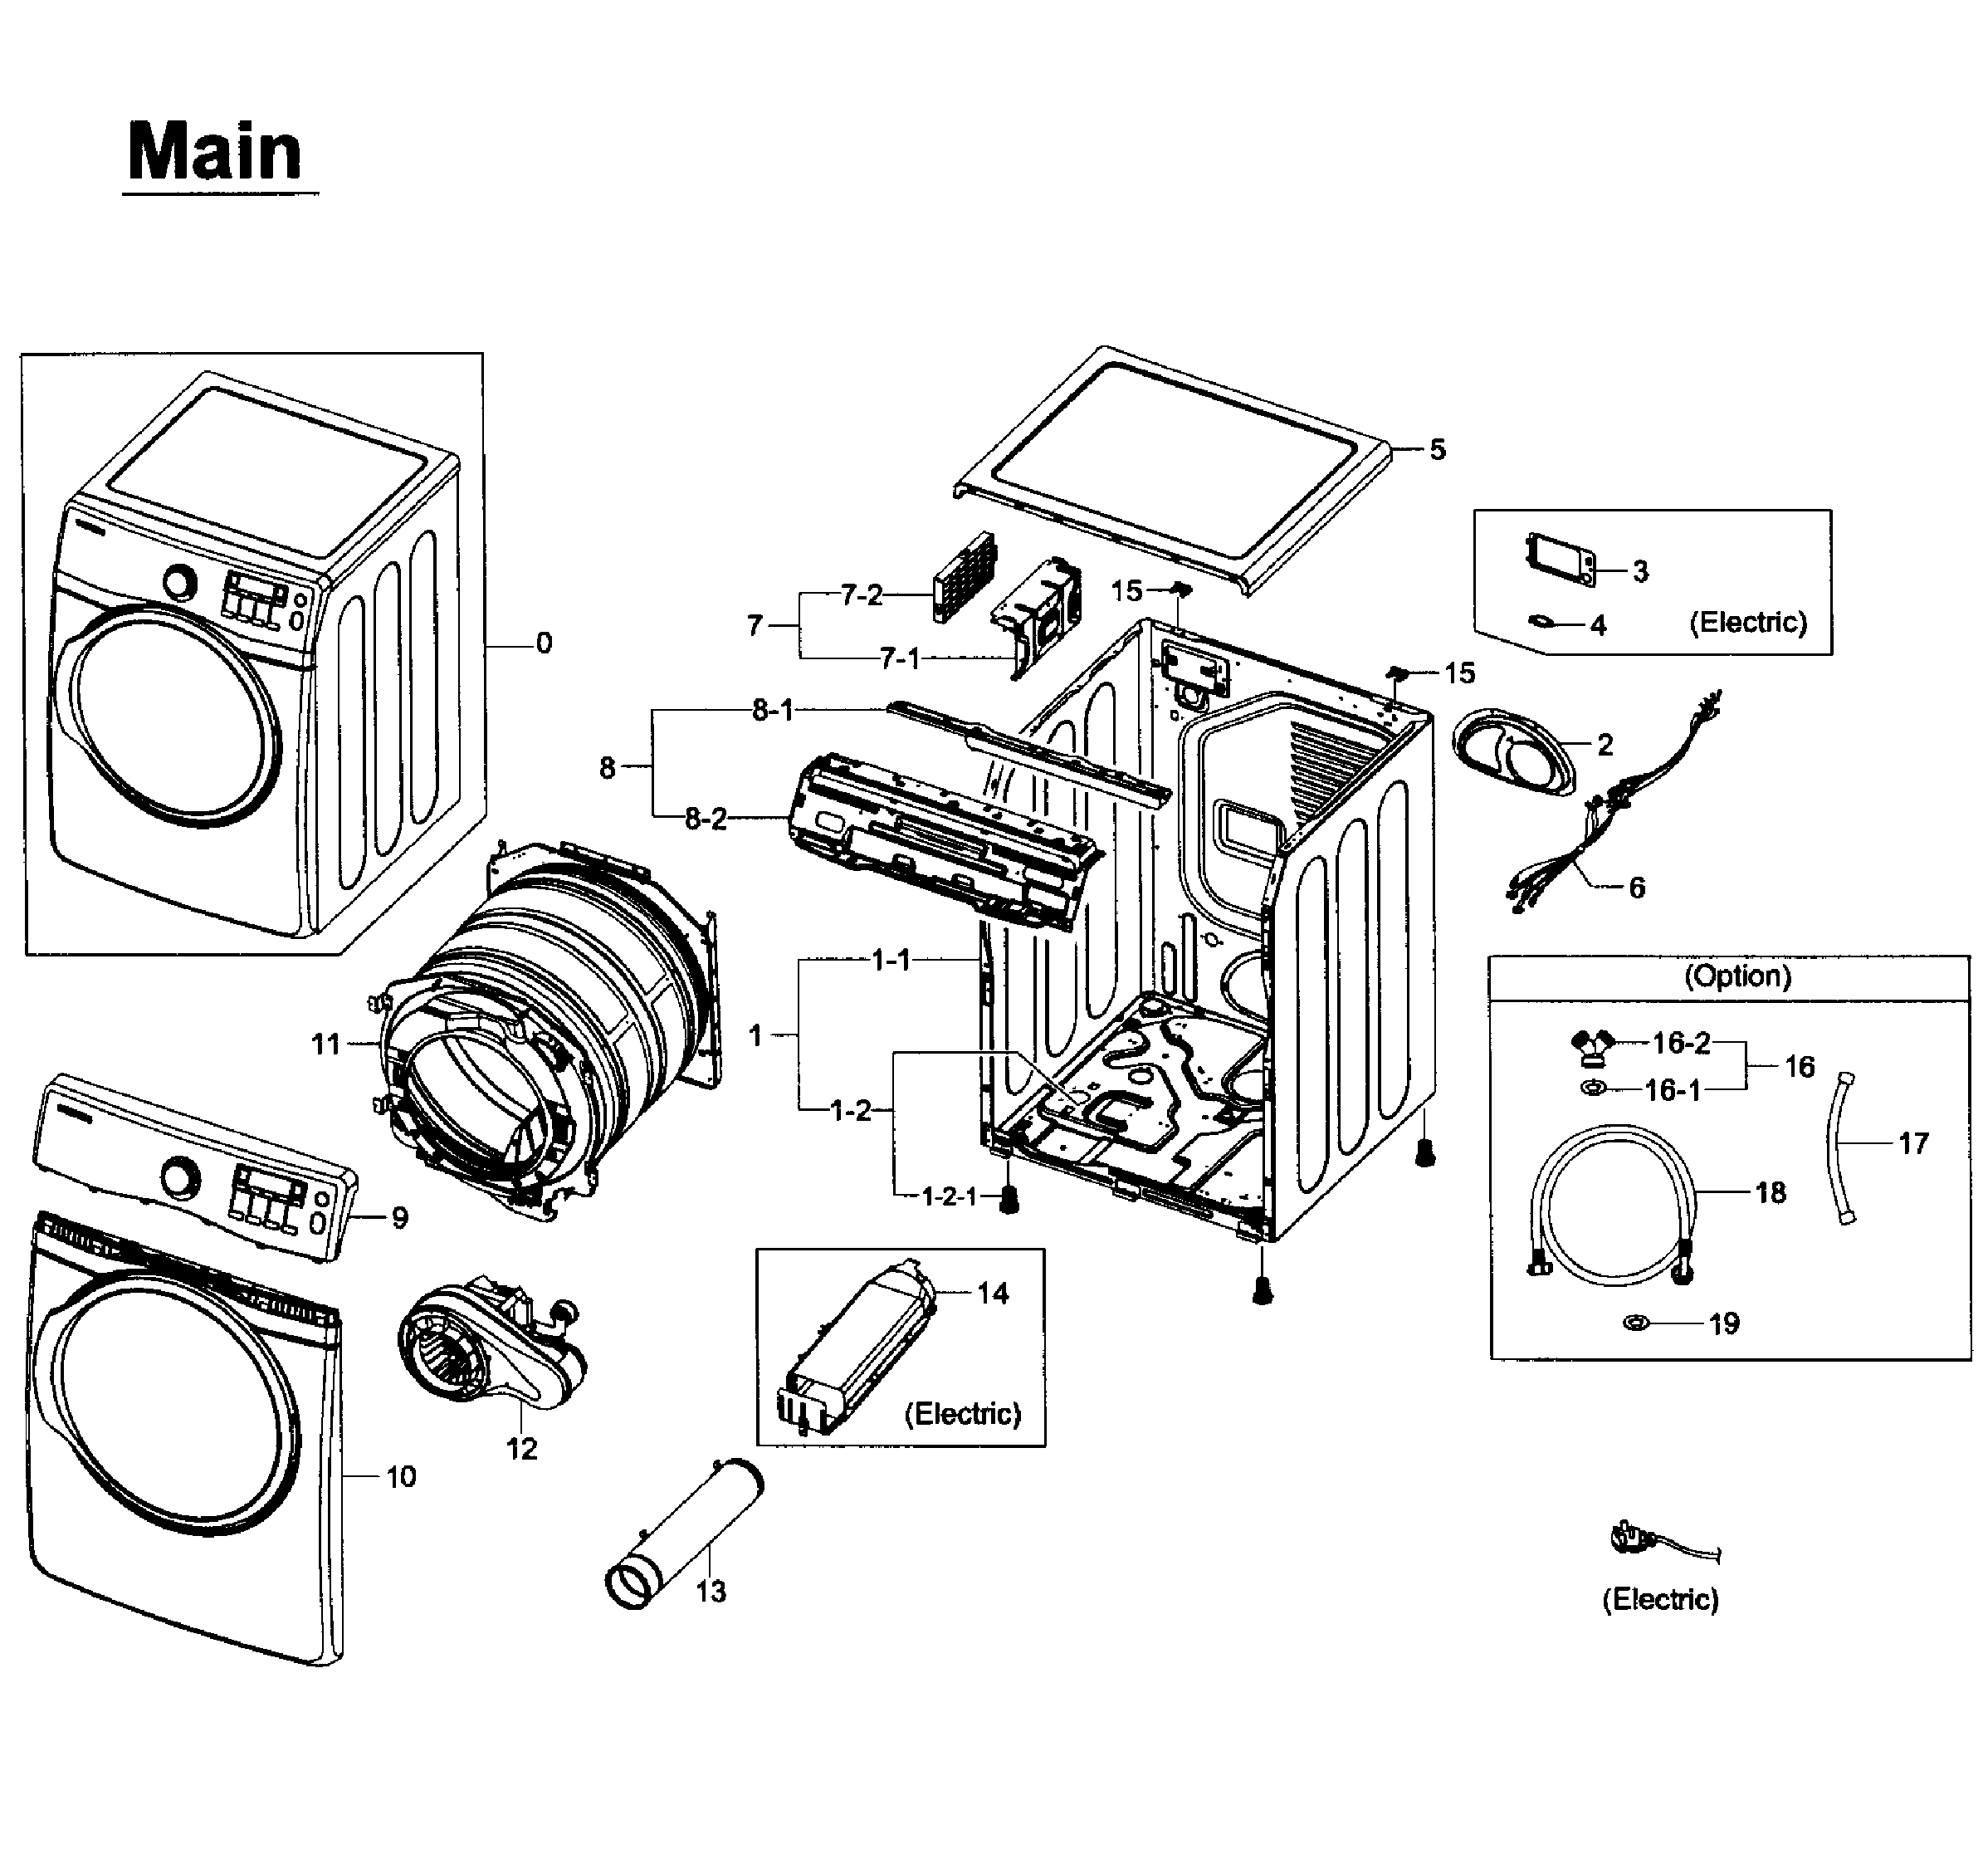 samsung dryer dv210aewxaa diagram